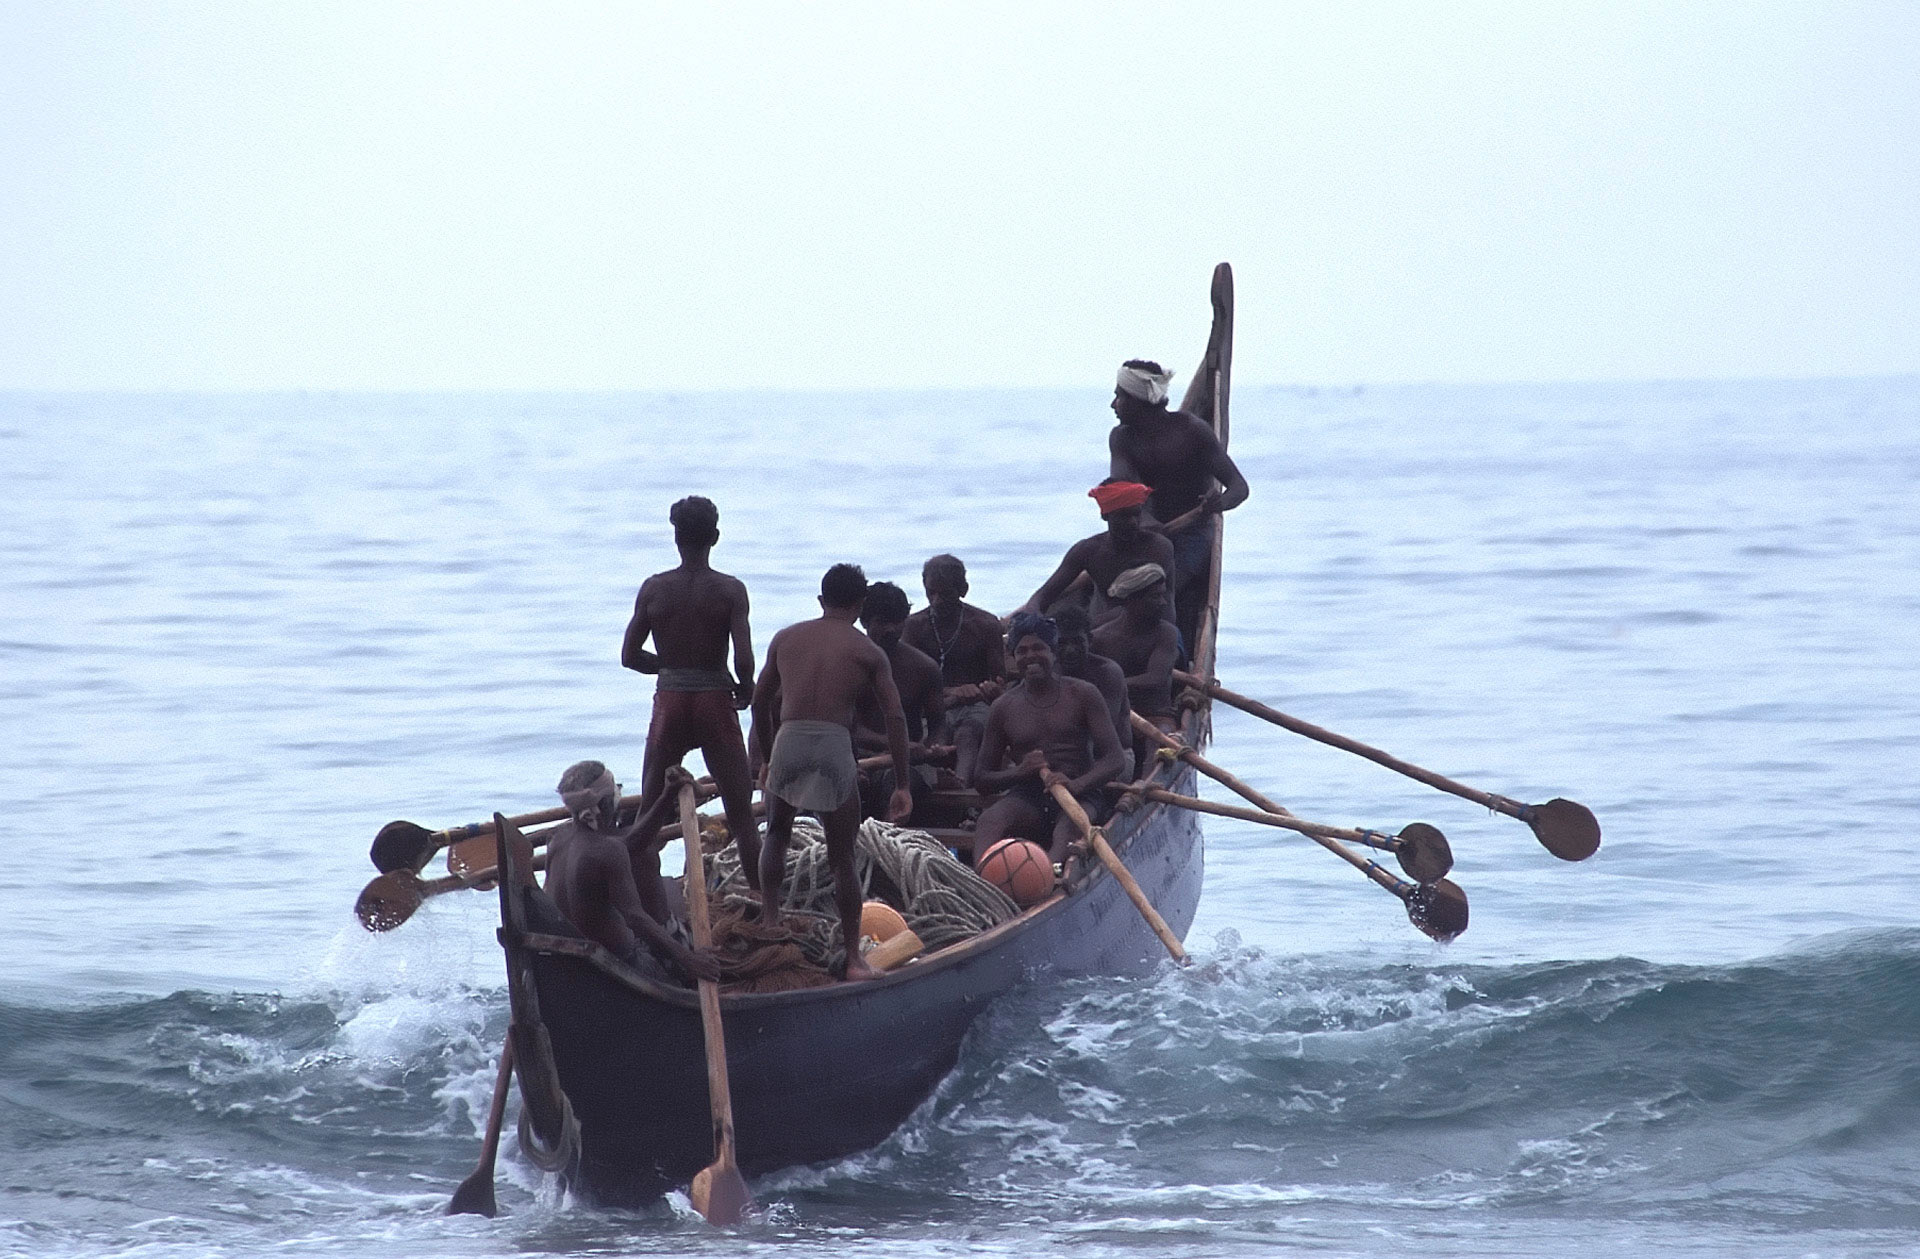 Fishermen in a boat on the Arabian Sea, Somatheeram Beach, Kerala, India